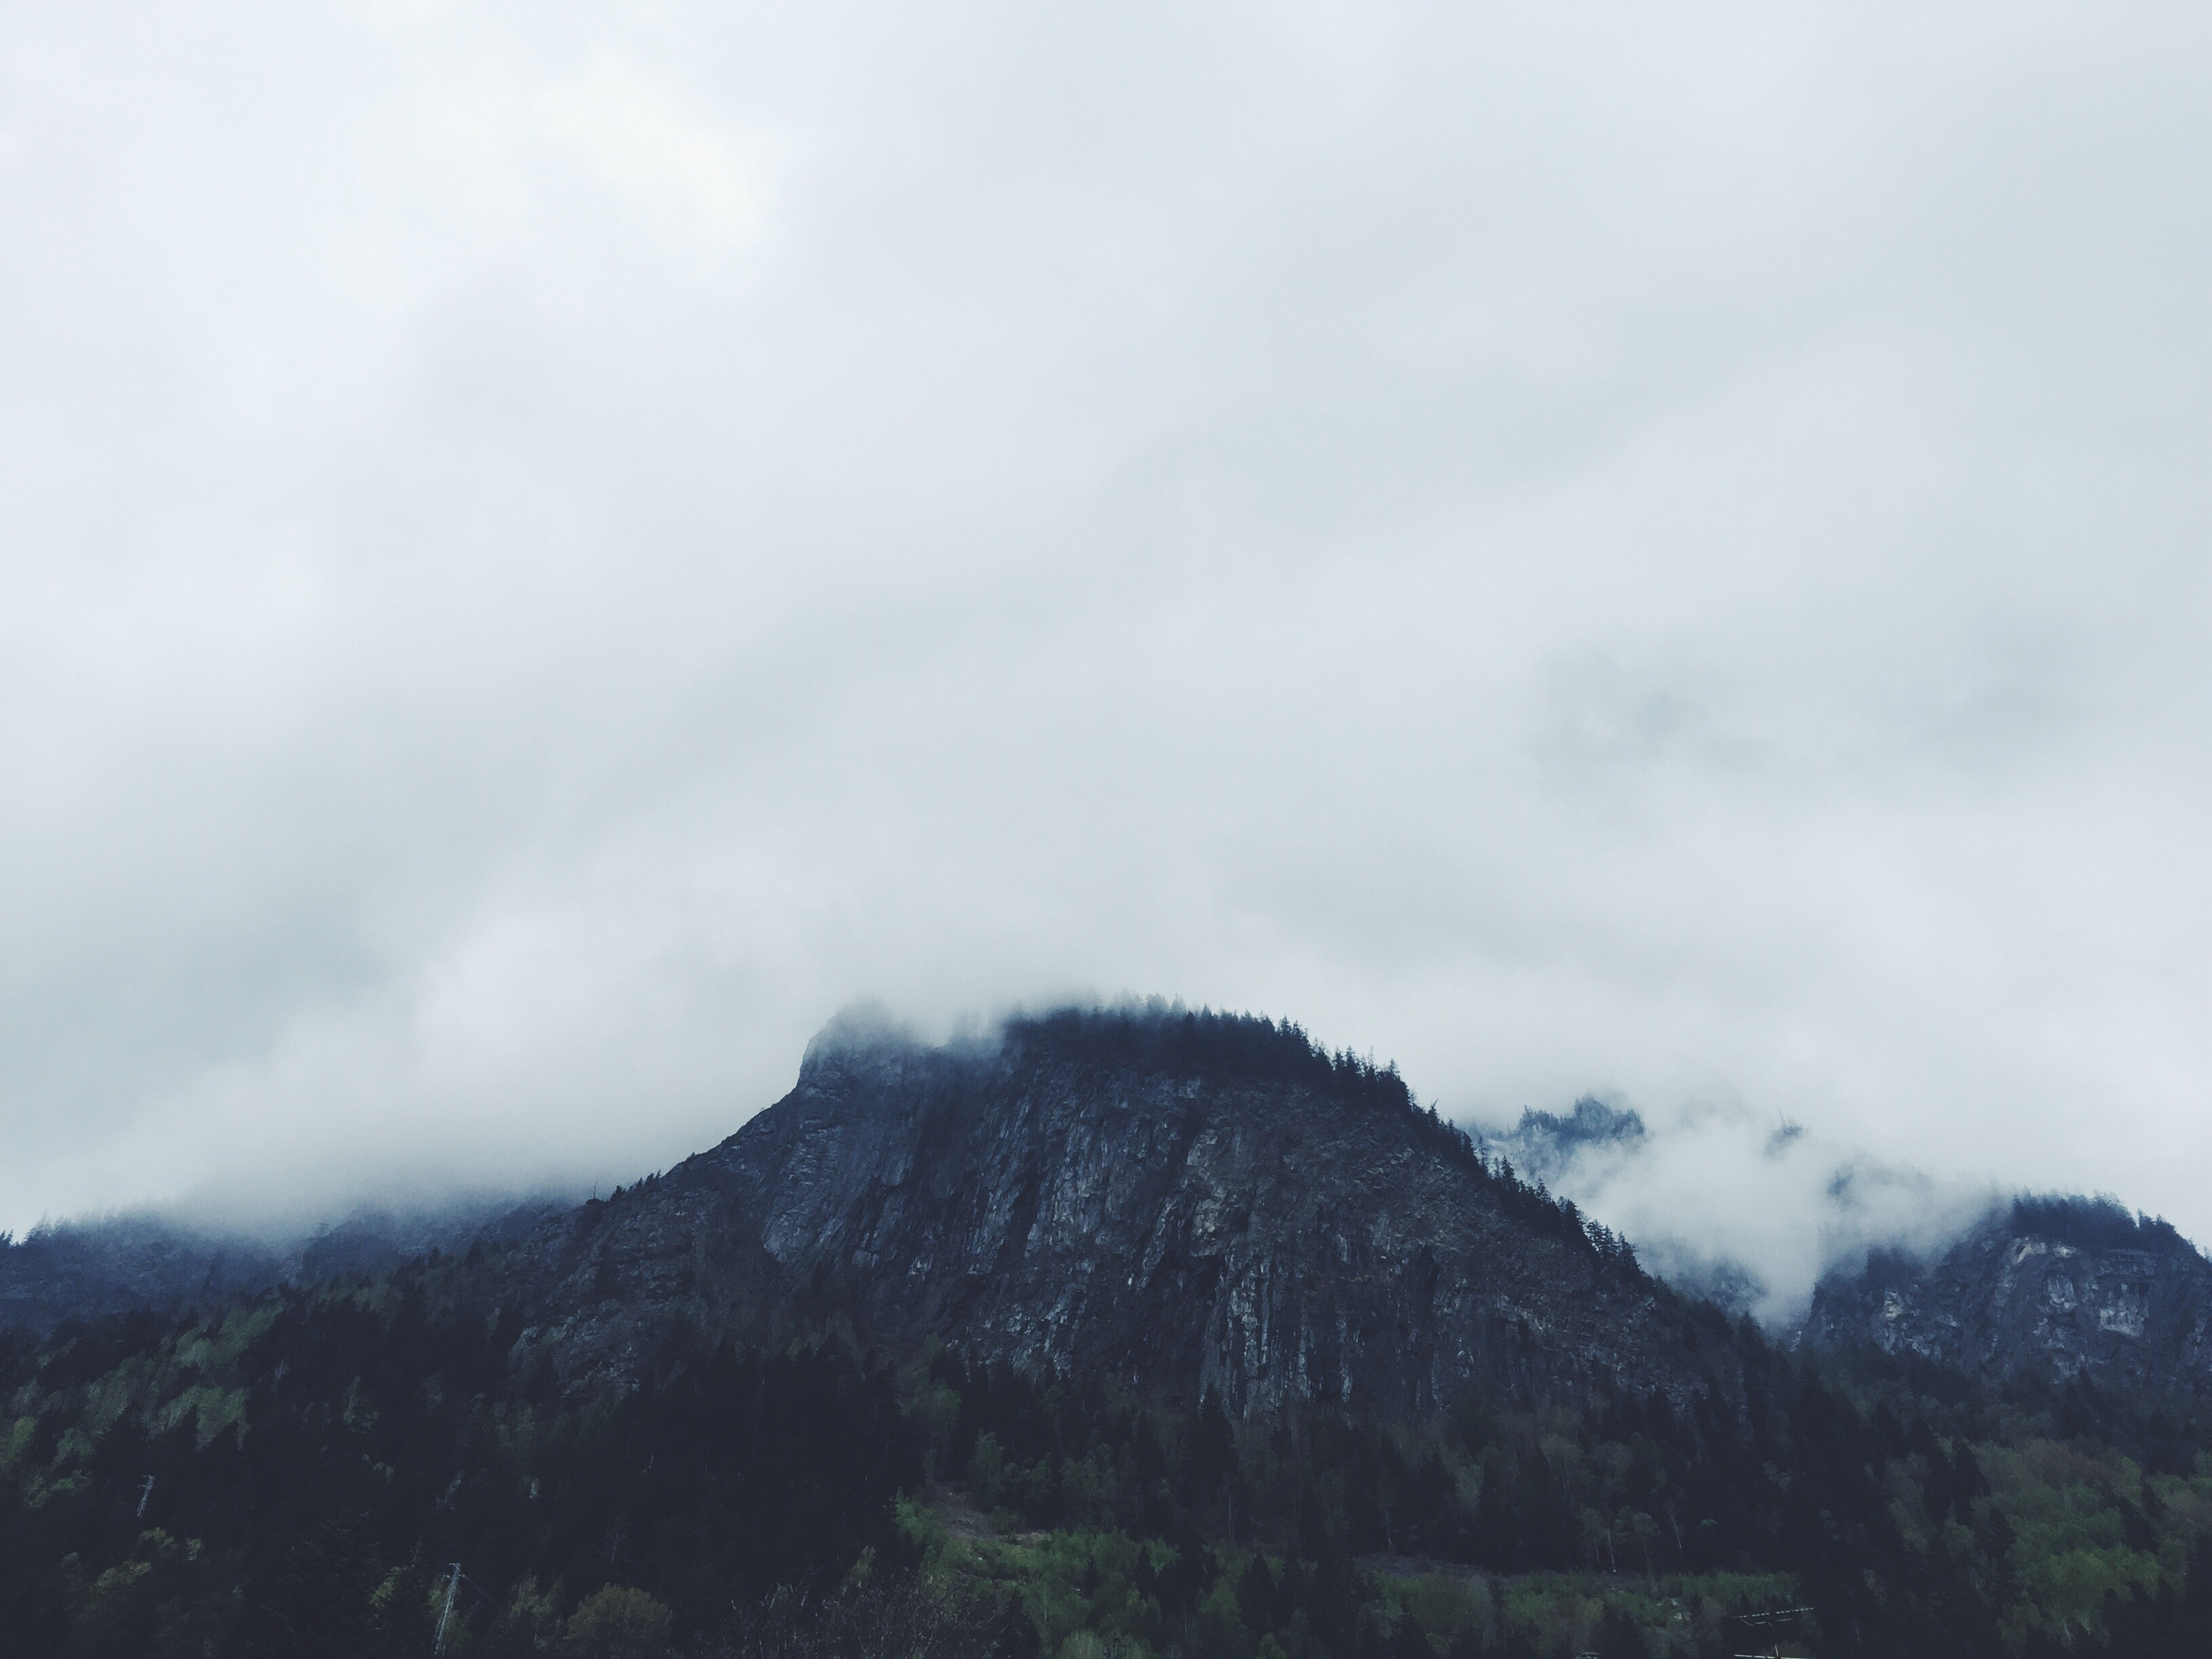 A jagged mountain shrouded in fog on a cloudy day